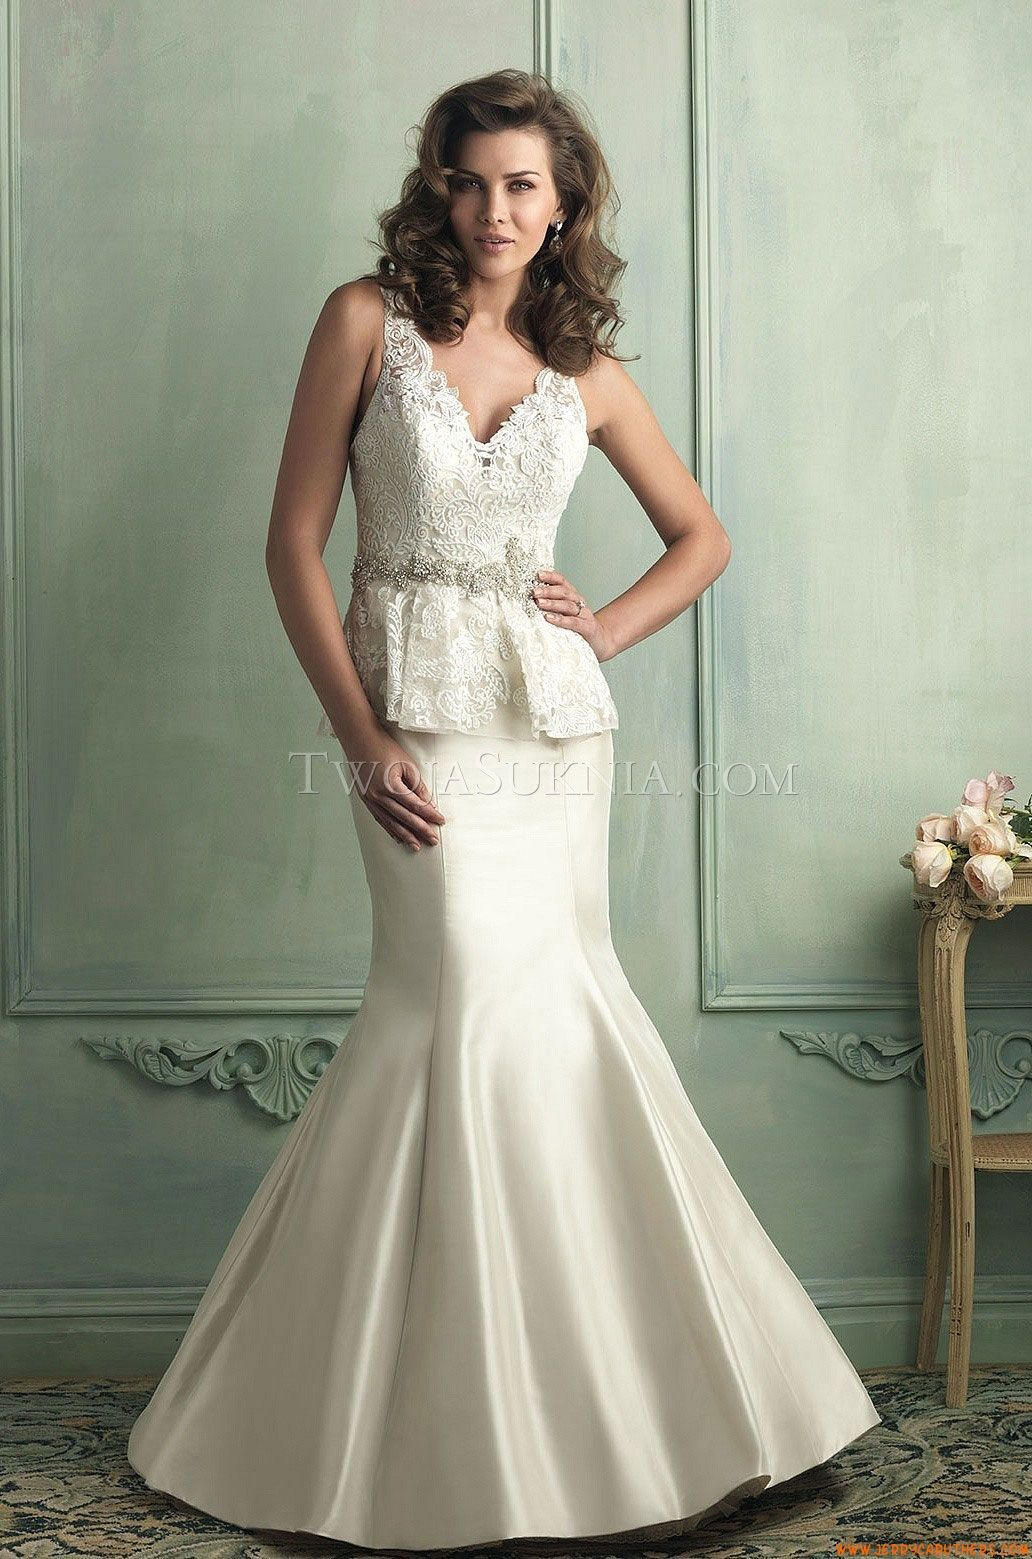 Peplum Lace Dress Exclusively At Encore Bridal In Fort Collins Colorado